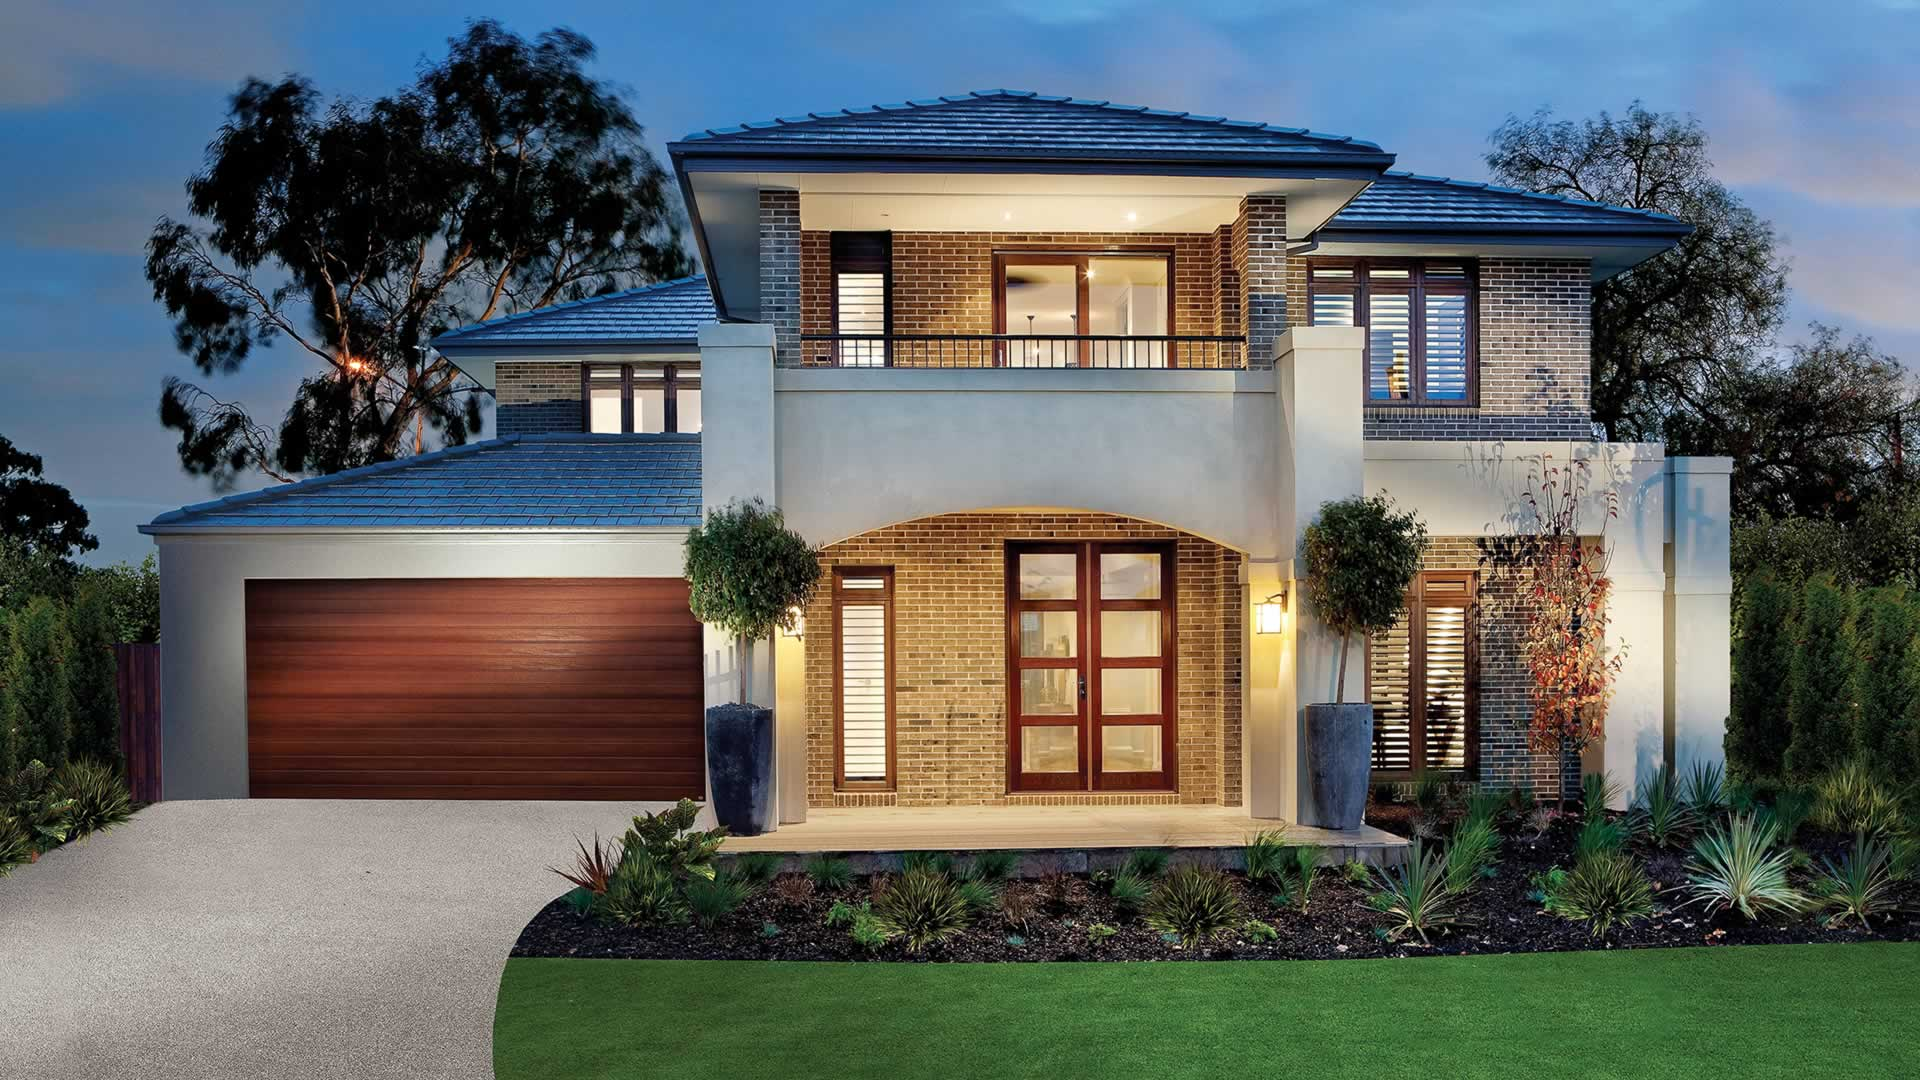 Design Master Homes Residential New Home Builders